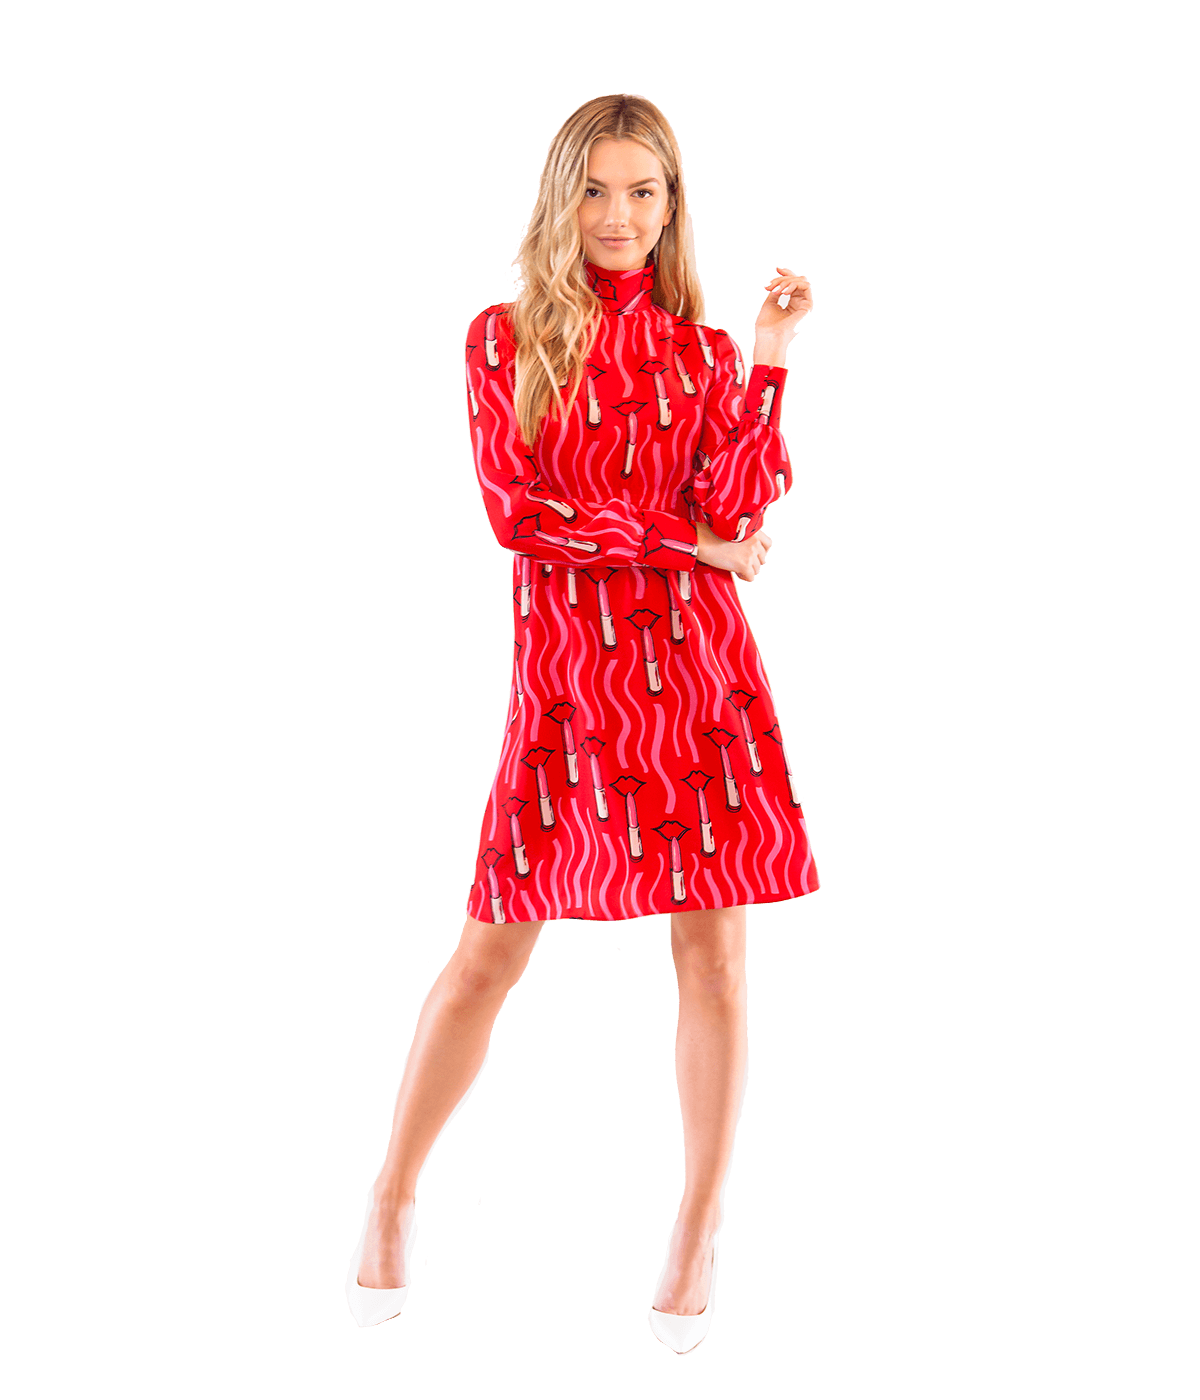 Lipstick Print Silk Crepe Dress - Lady Jetset